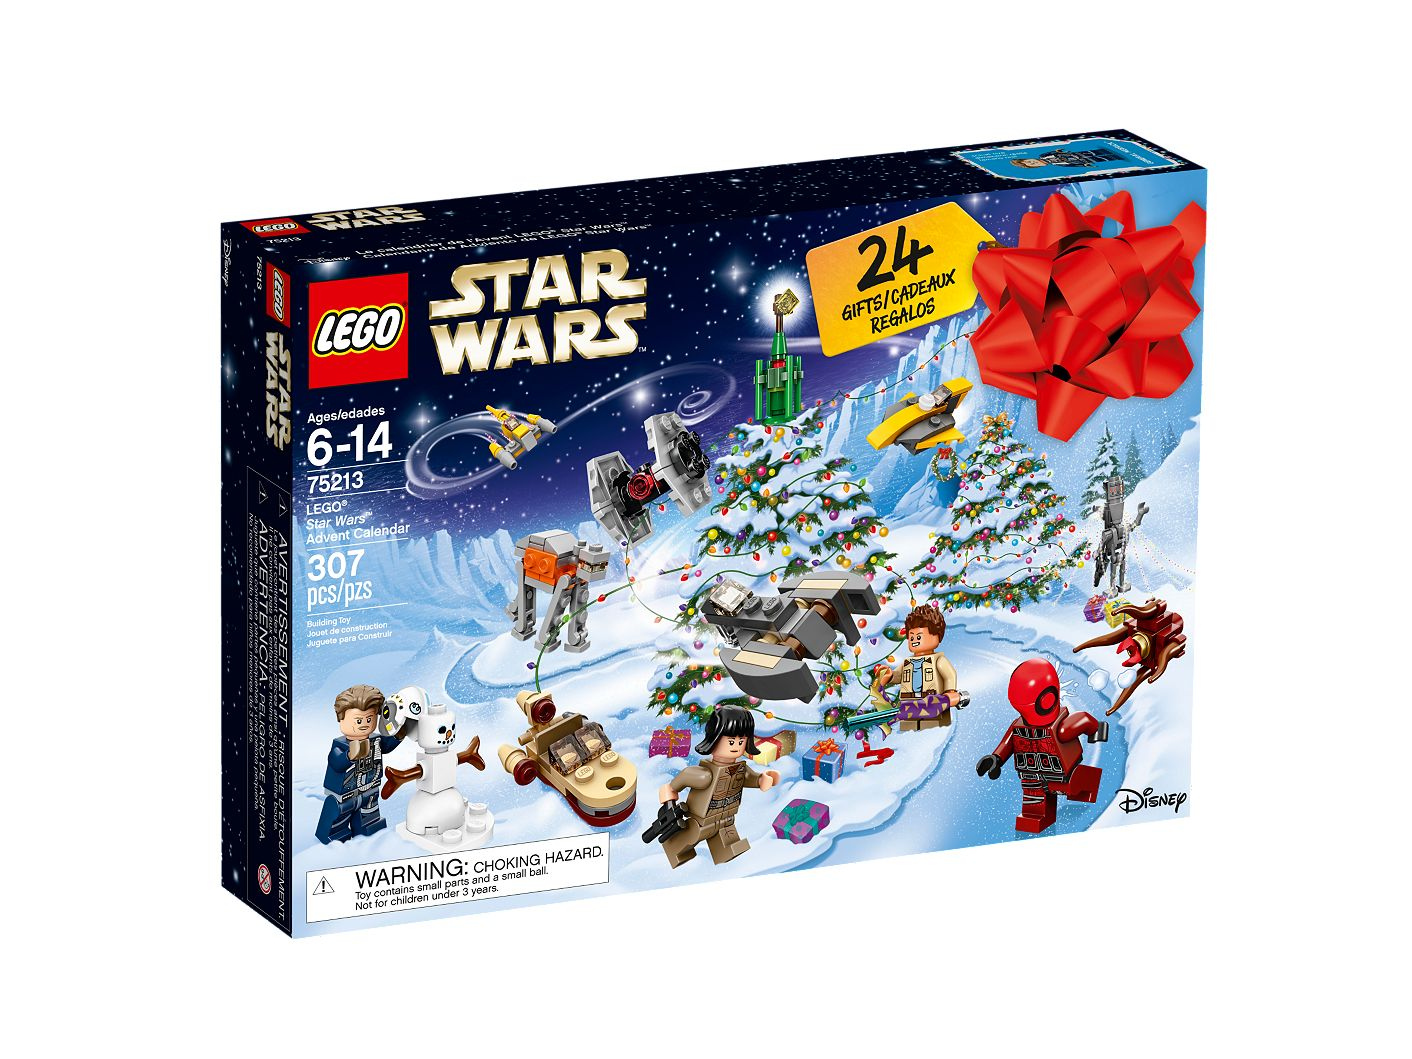 Calendrier Avent Lego Star Wars 2019.Lego Star Wars Advent Calendar 75213 Star Wars Buy Online At The Official Lego Shop Us